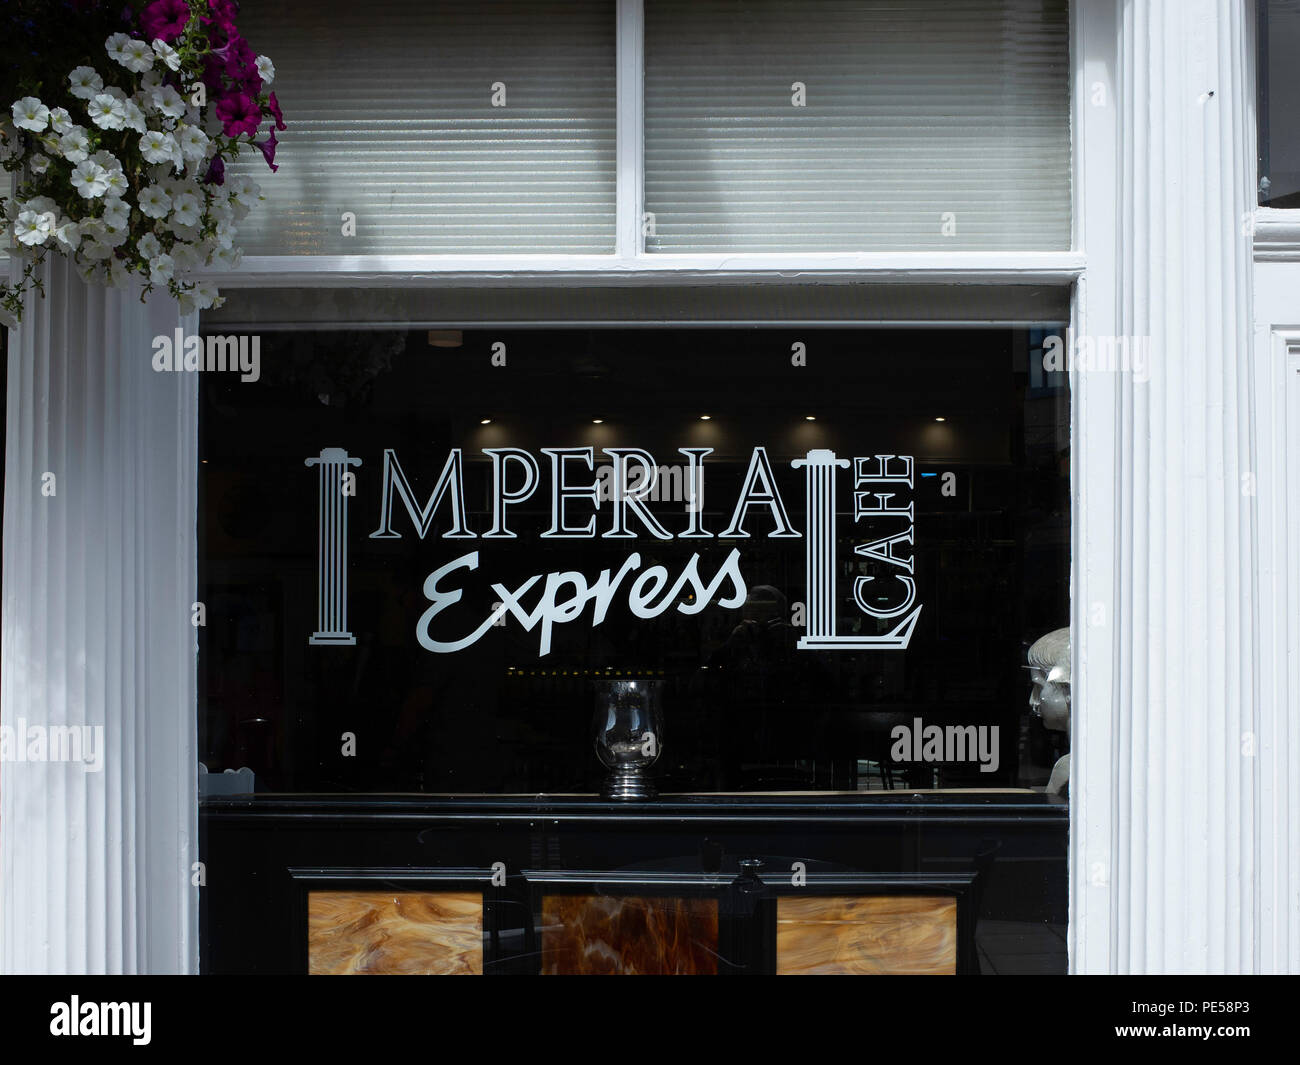 Imperial Express Café Restaurant in Northumberland Street Darlington Co Durham UK sign on the window Stock Photo